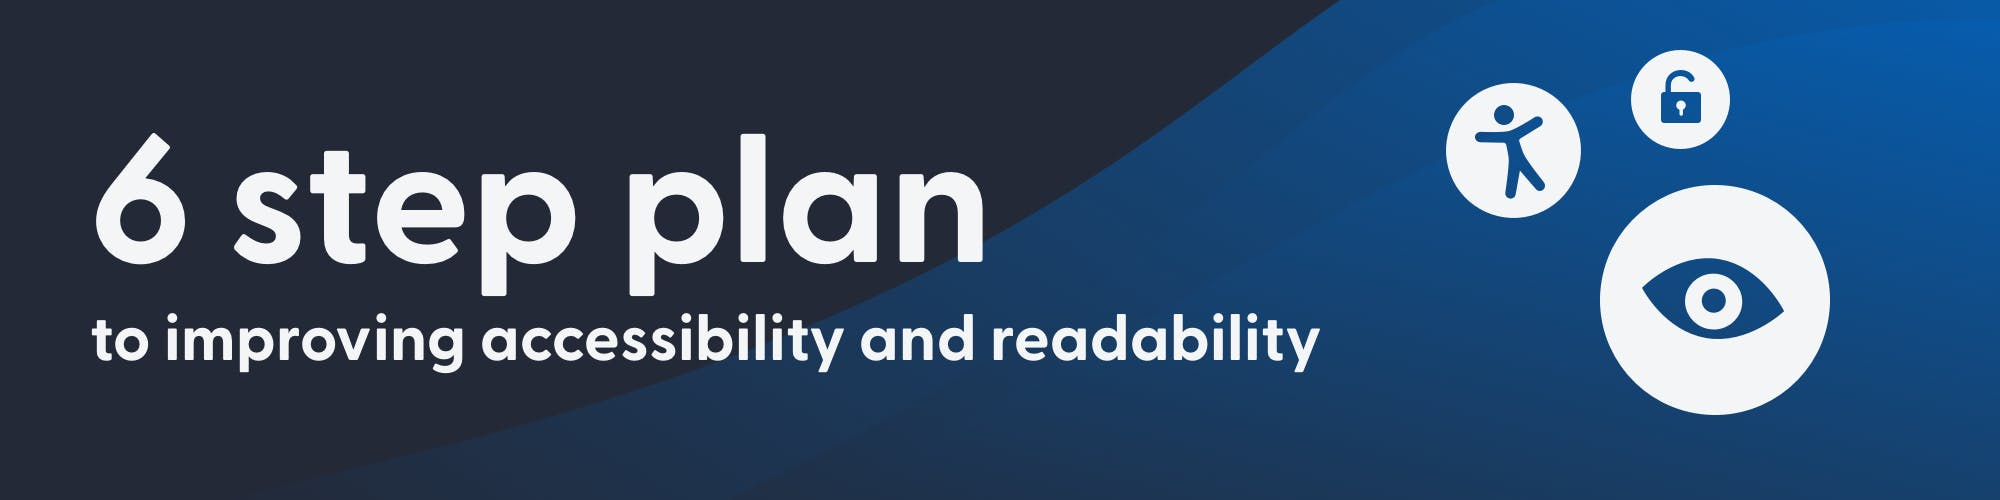 6 Step Plan to improving accessibility and readability. Icons of: an accessibility man, an eye, and an open lock float on the right.